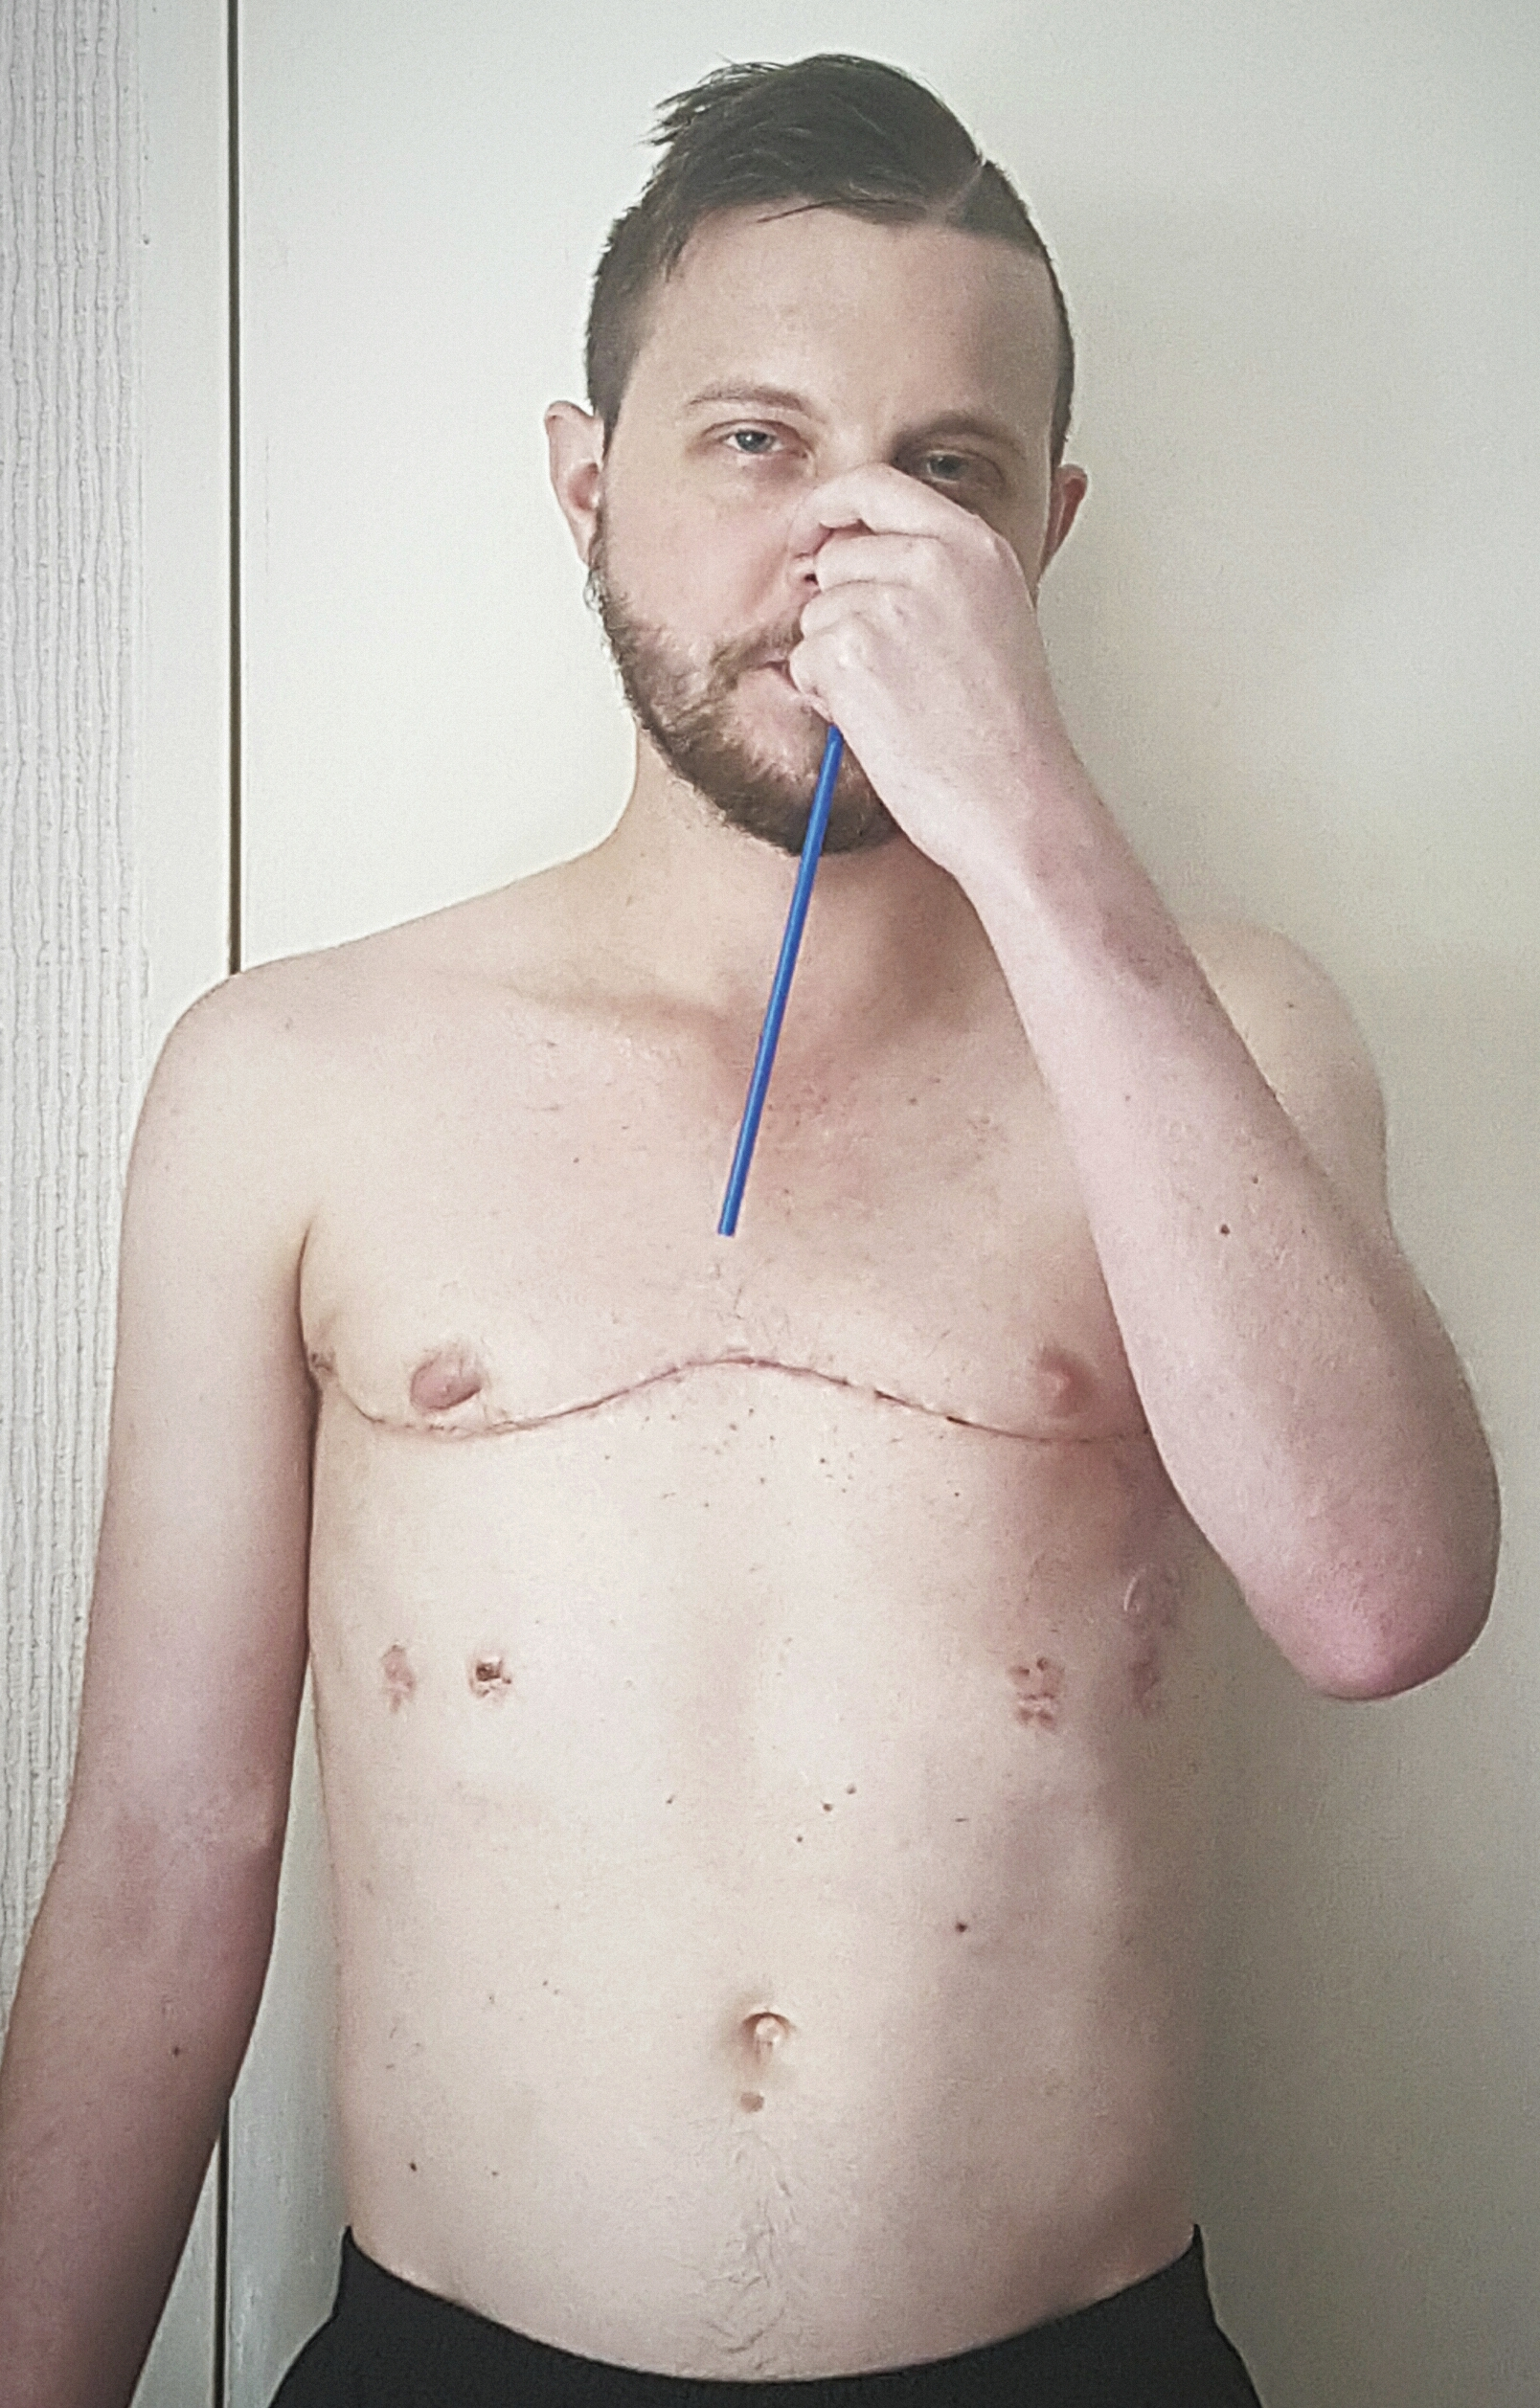 man with cystic fibrosis taking the straw challenge